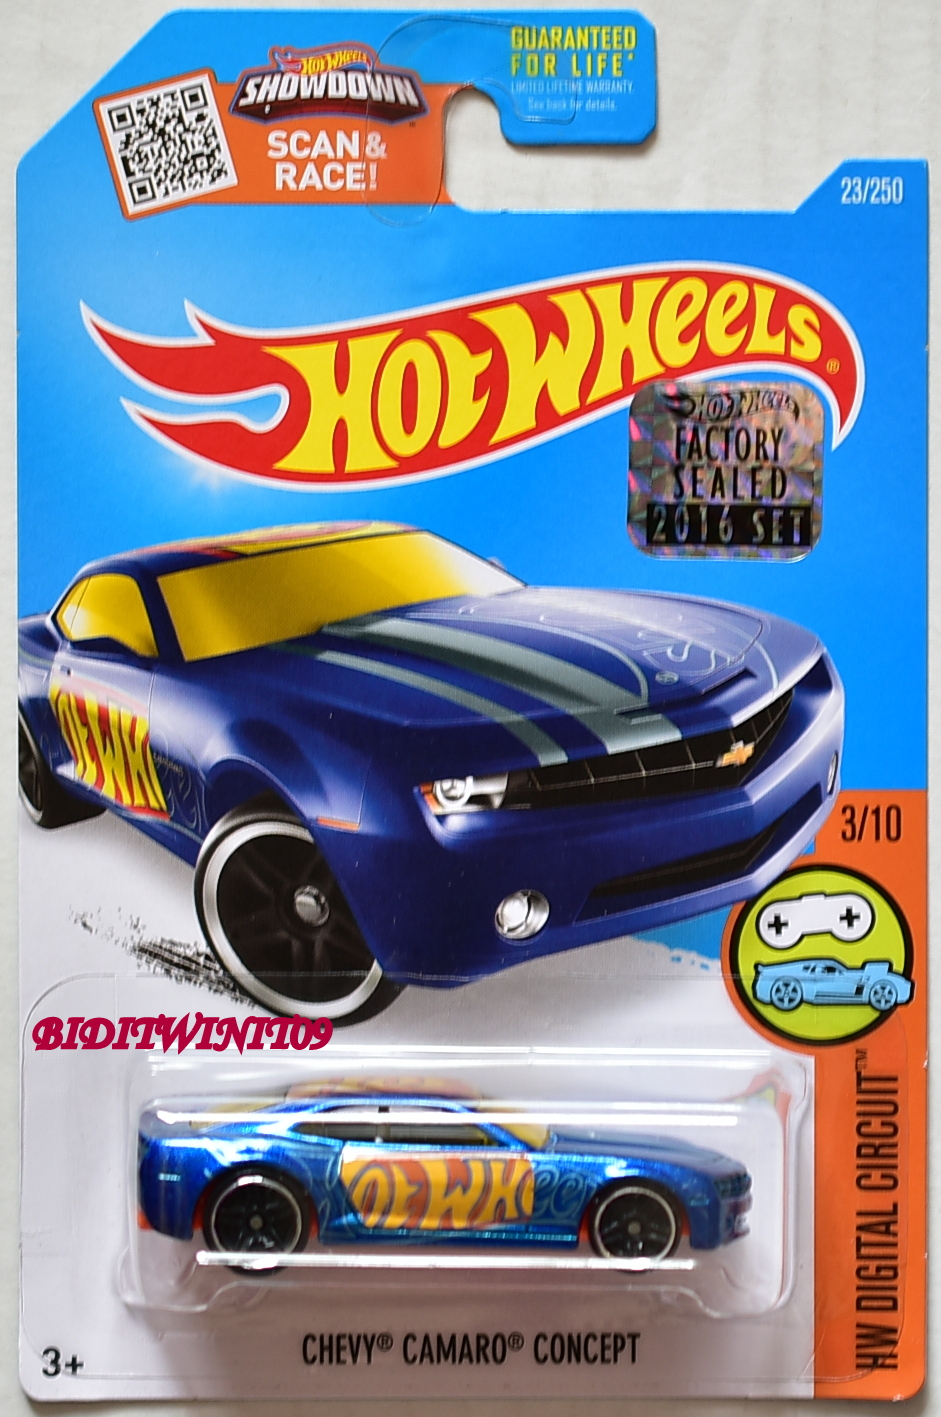 HOT WHEELS 2016 HW DIGITAL CIRCUIT CHEVY CAMARO CONCEPT BLUE FACTORY SEALED